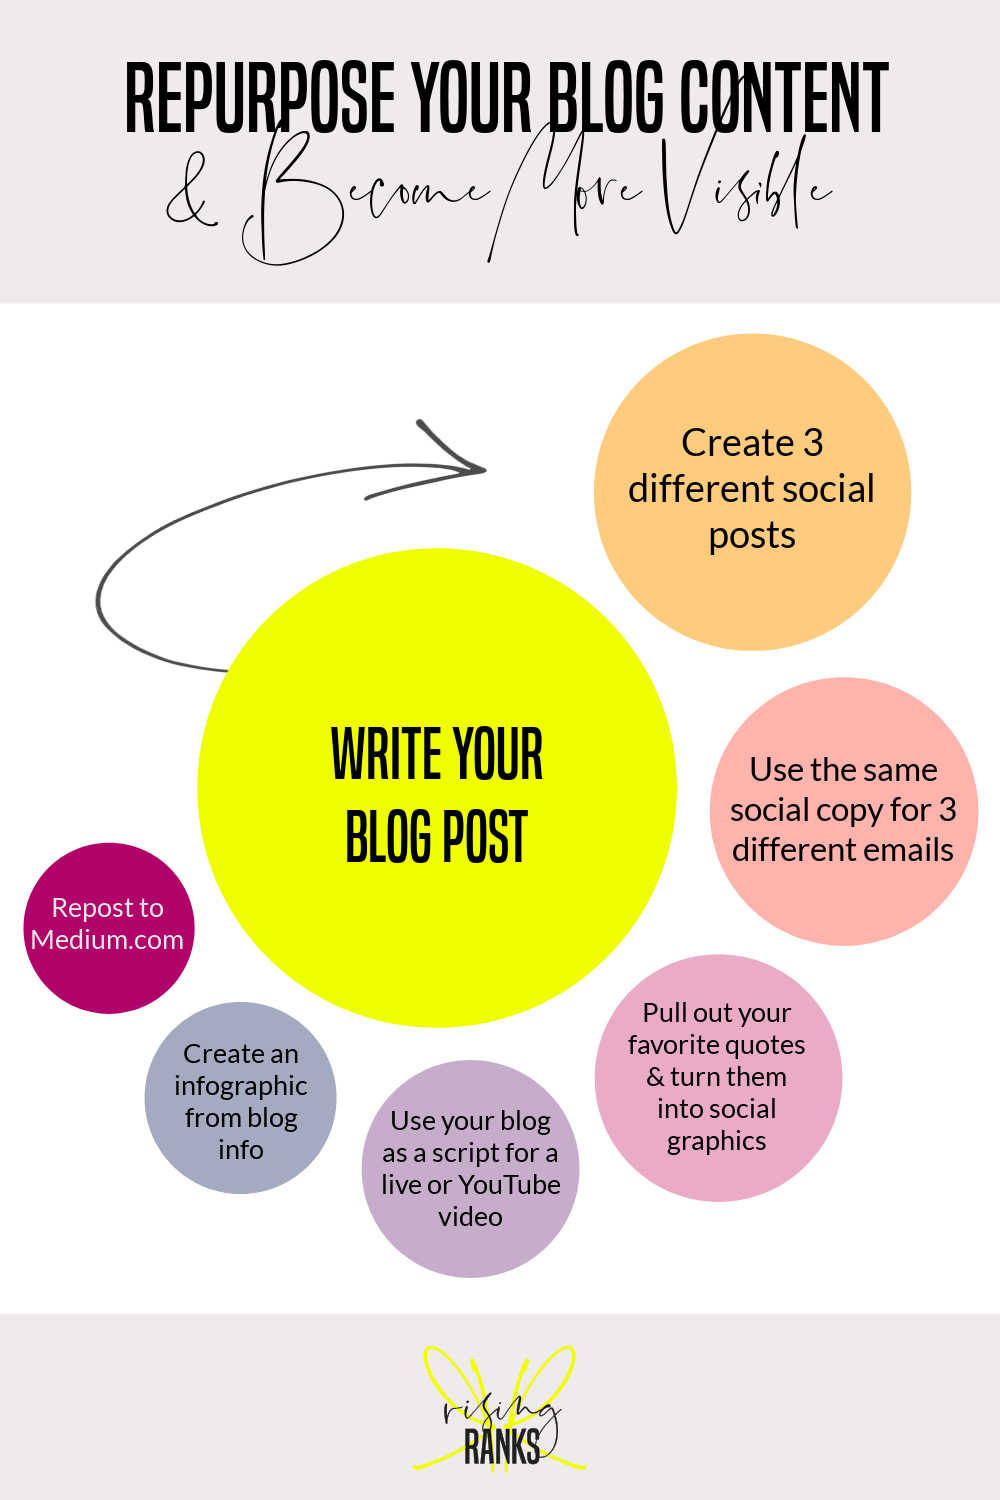 repurpose your blog content infographic